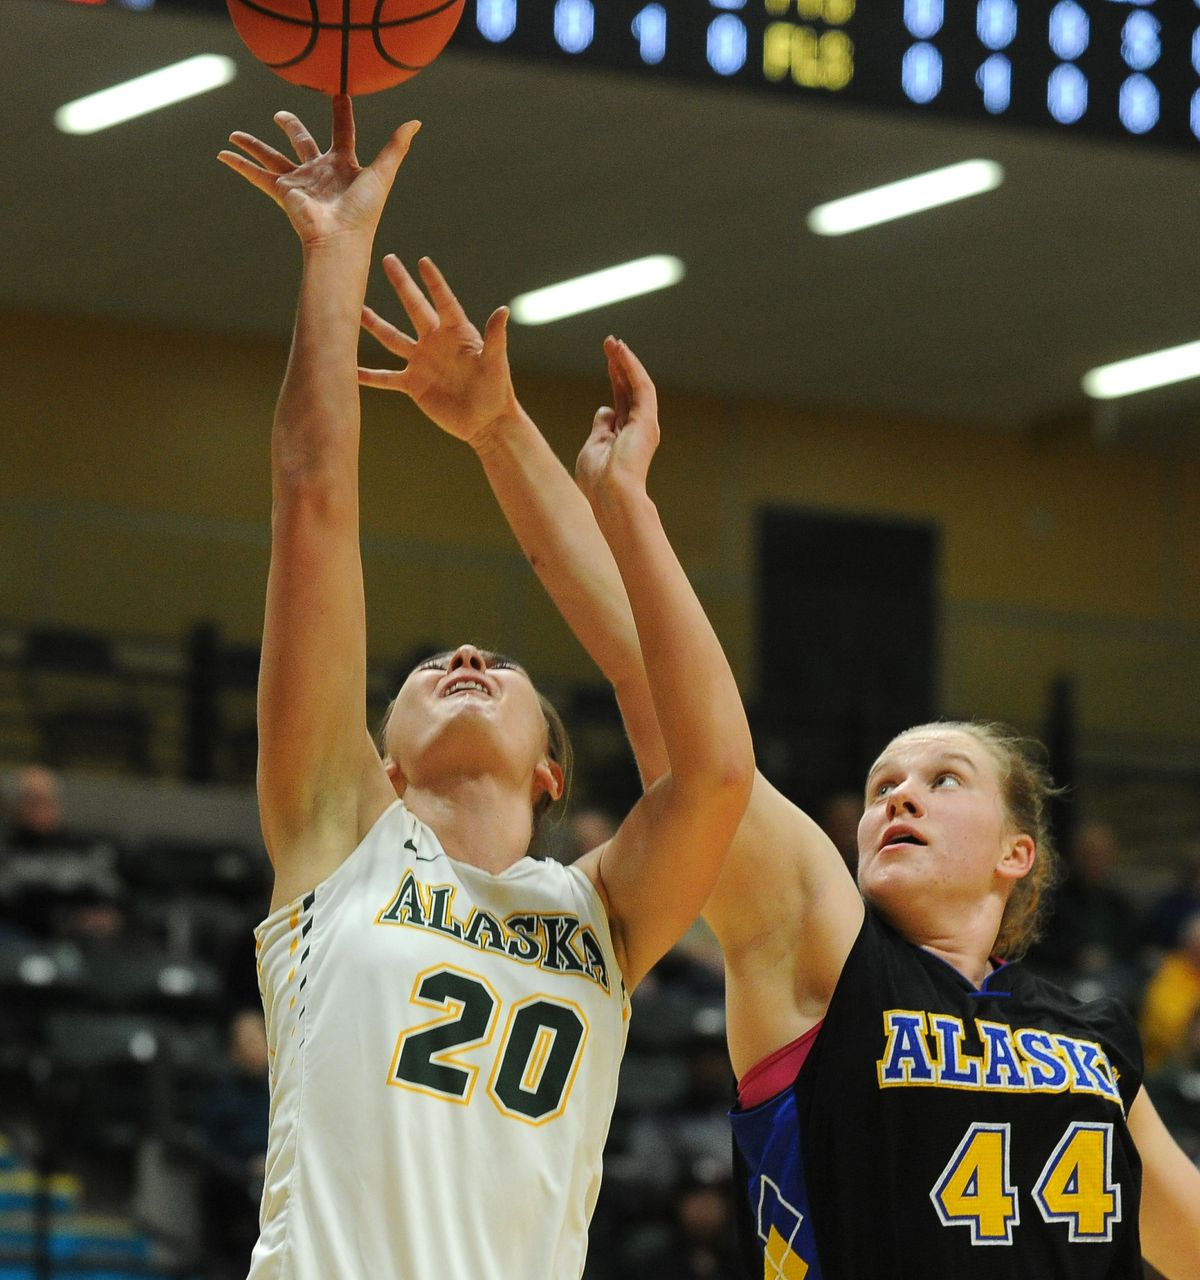 Hannah Wandersee of UAA goes up for a shot against UAF's Marian Wamsley at the Alaska Airliness Center on Tuesday. (Bob Hallinen / ADN)